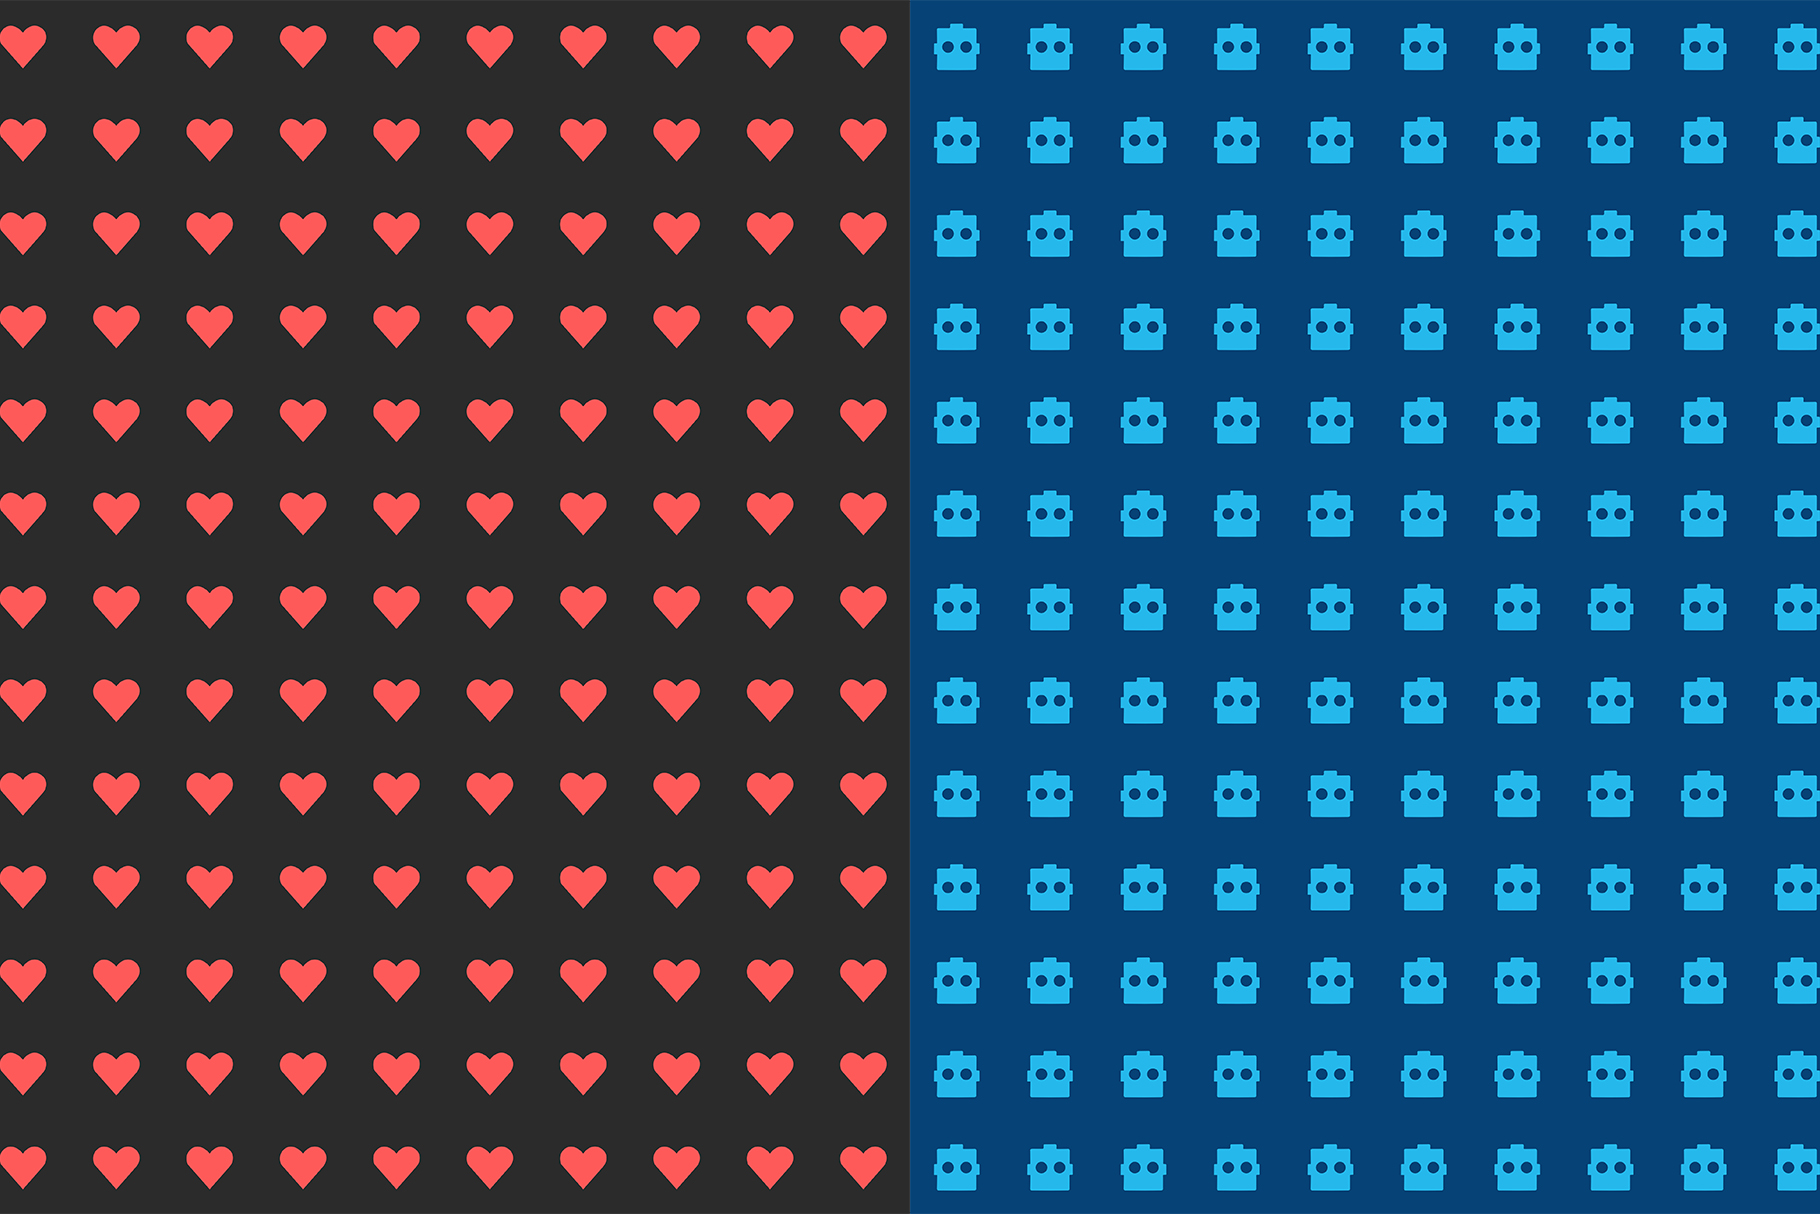 10 Love Death Robot Patterns example image 7